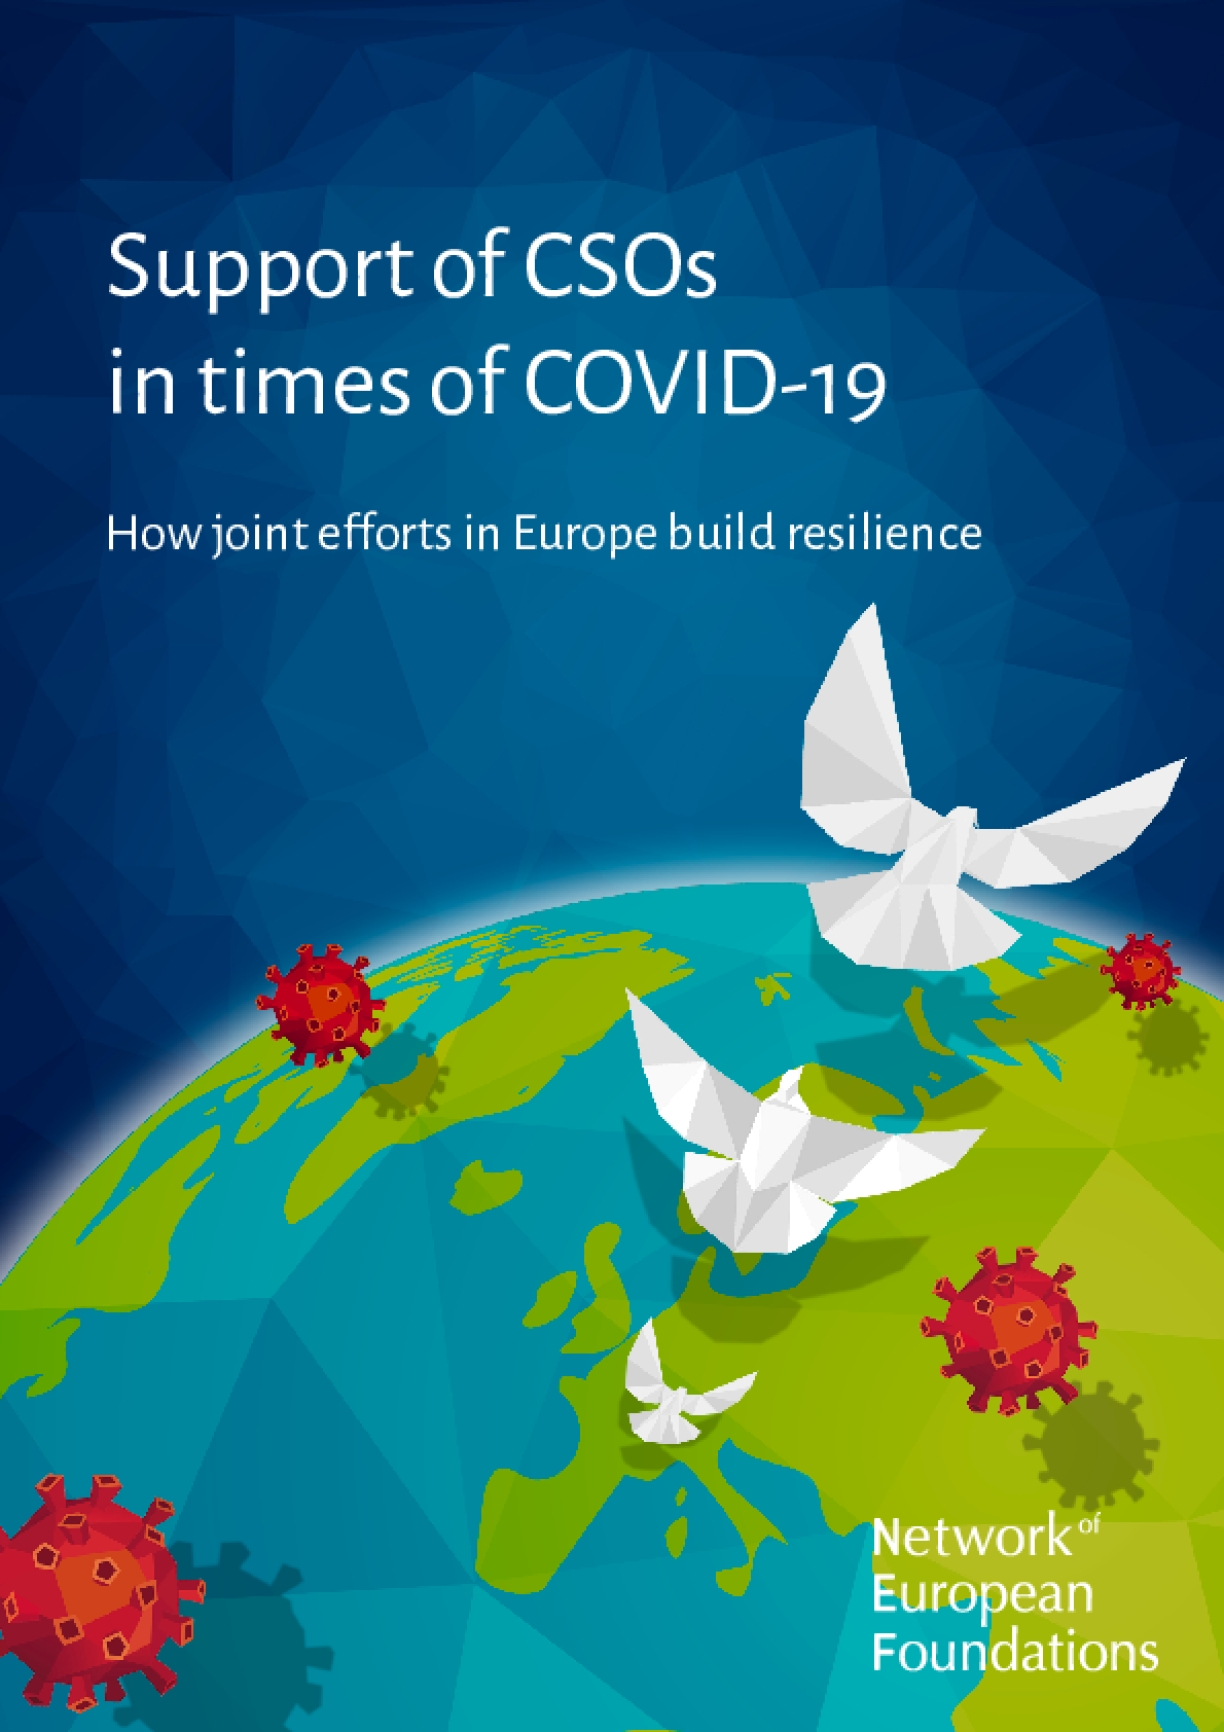 Support of CSOs in times of COVID-19: How joint efforts in Europe build resilience